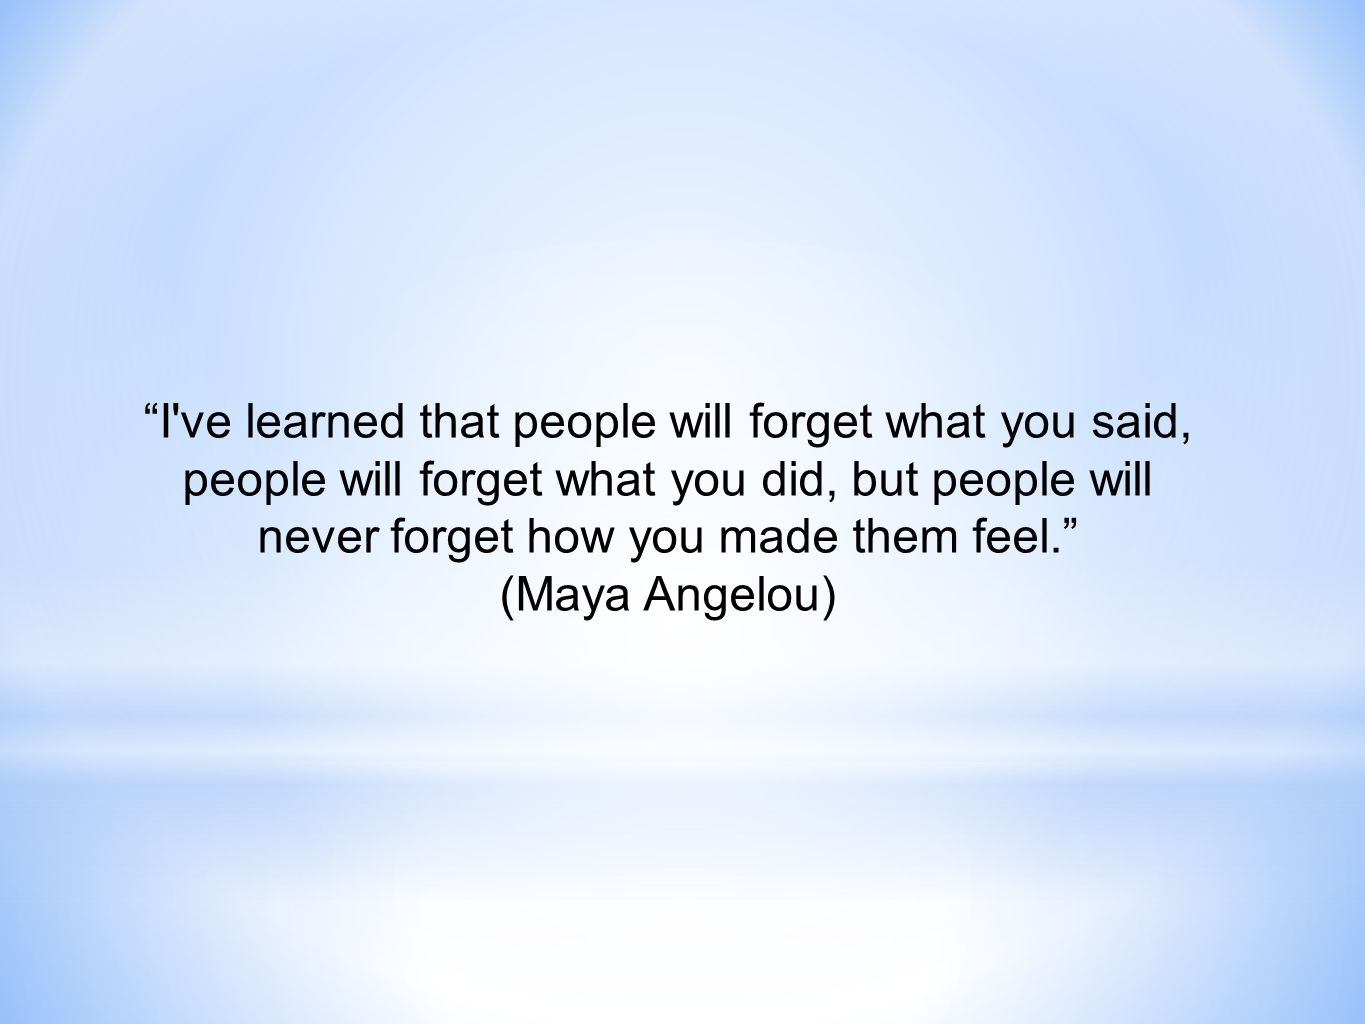 I ve learned that people will forget what you said, people will forget what you did, but people will never forget how you made them feel. (Maya Angelou)